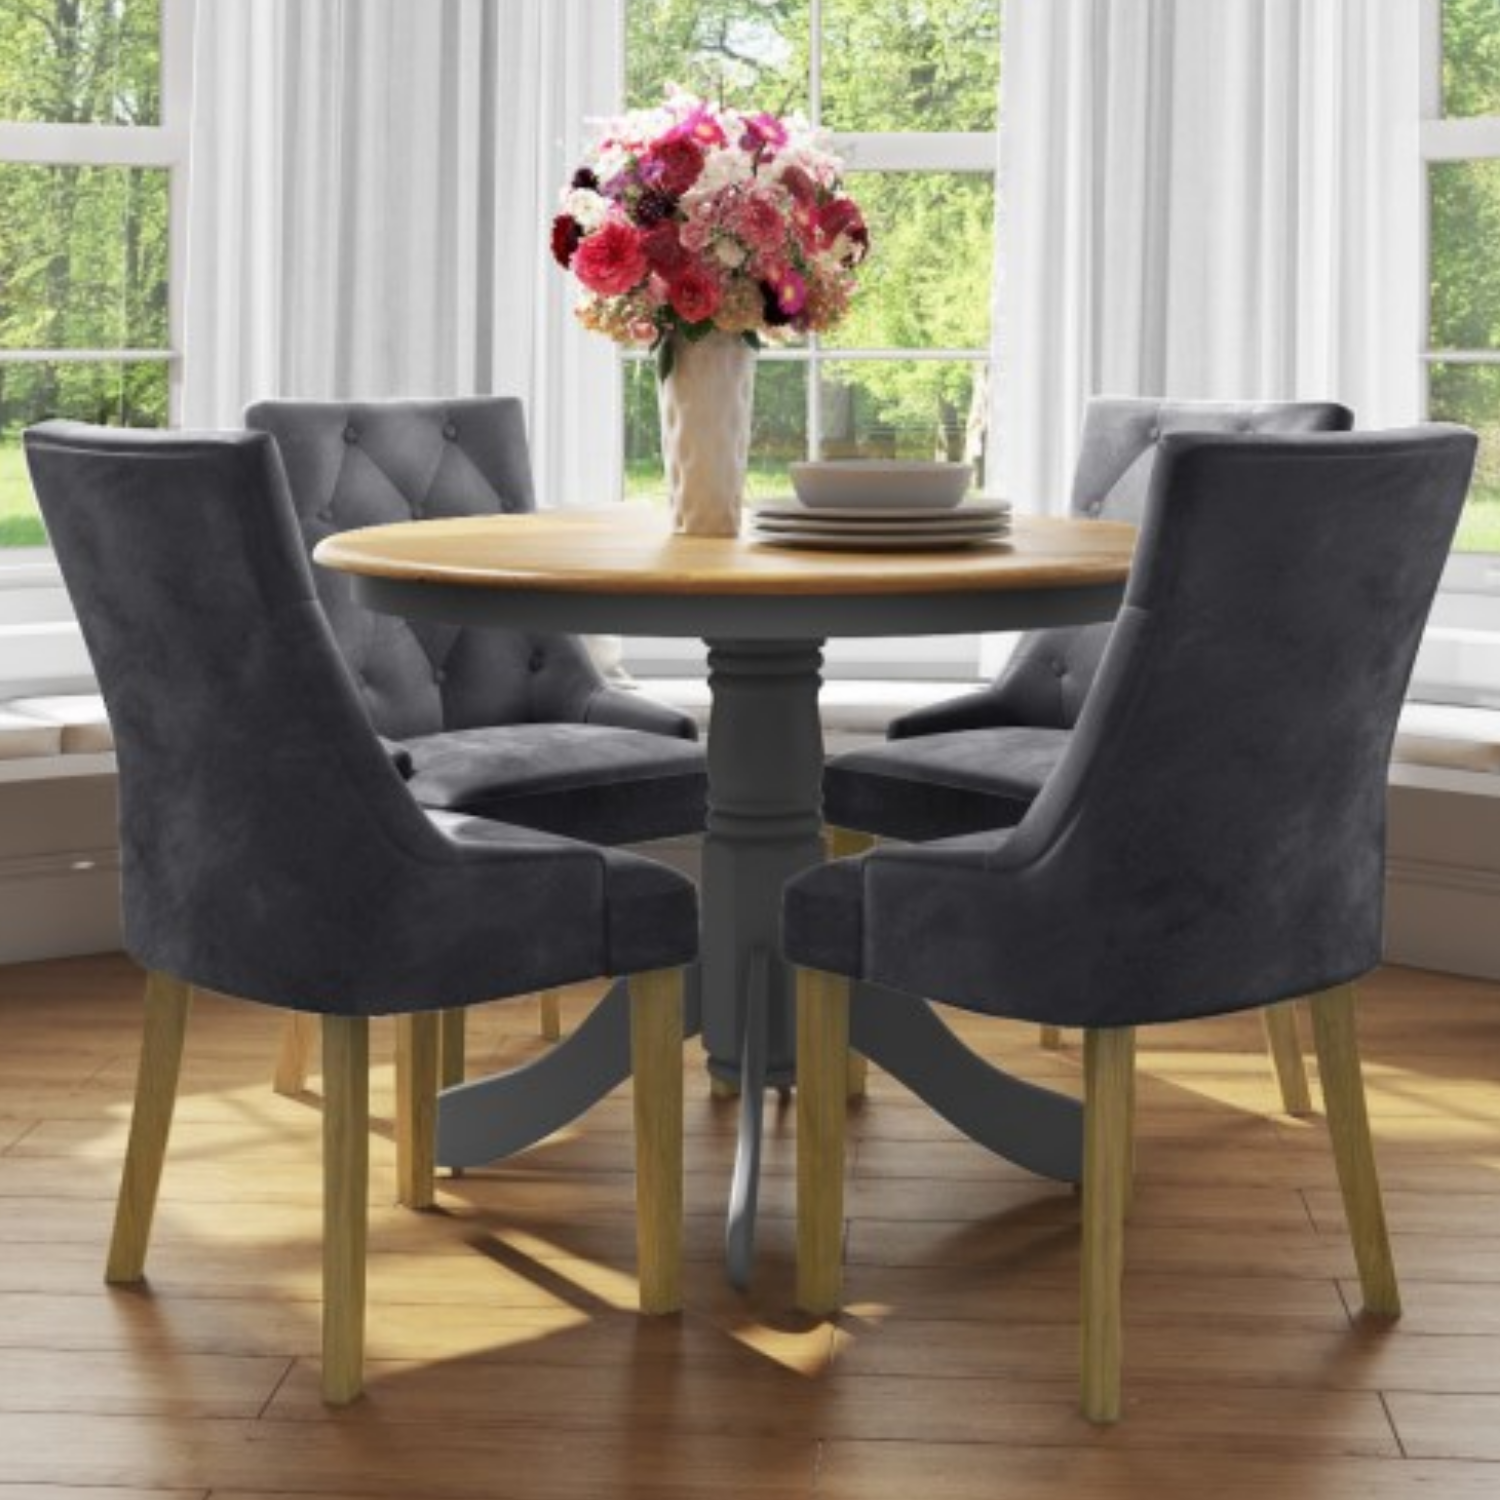 Small Round Dining Table With 4 Velvet Chairs In Grey With Oak Finish Rhode Island Kaylee Furniture123